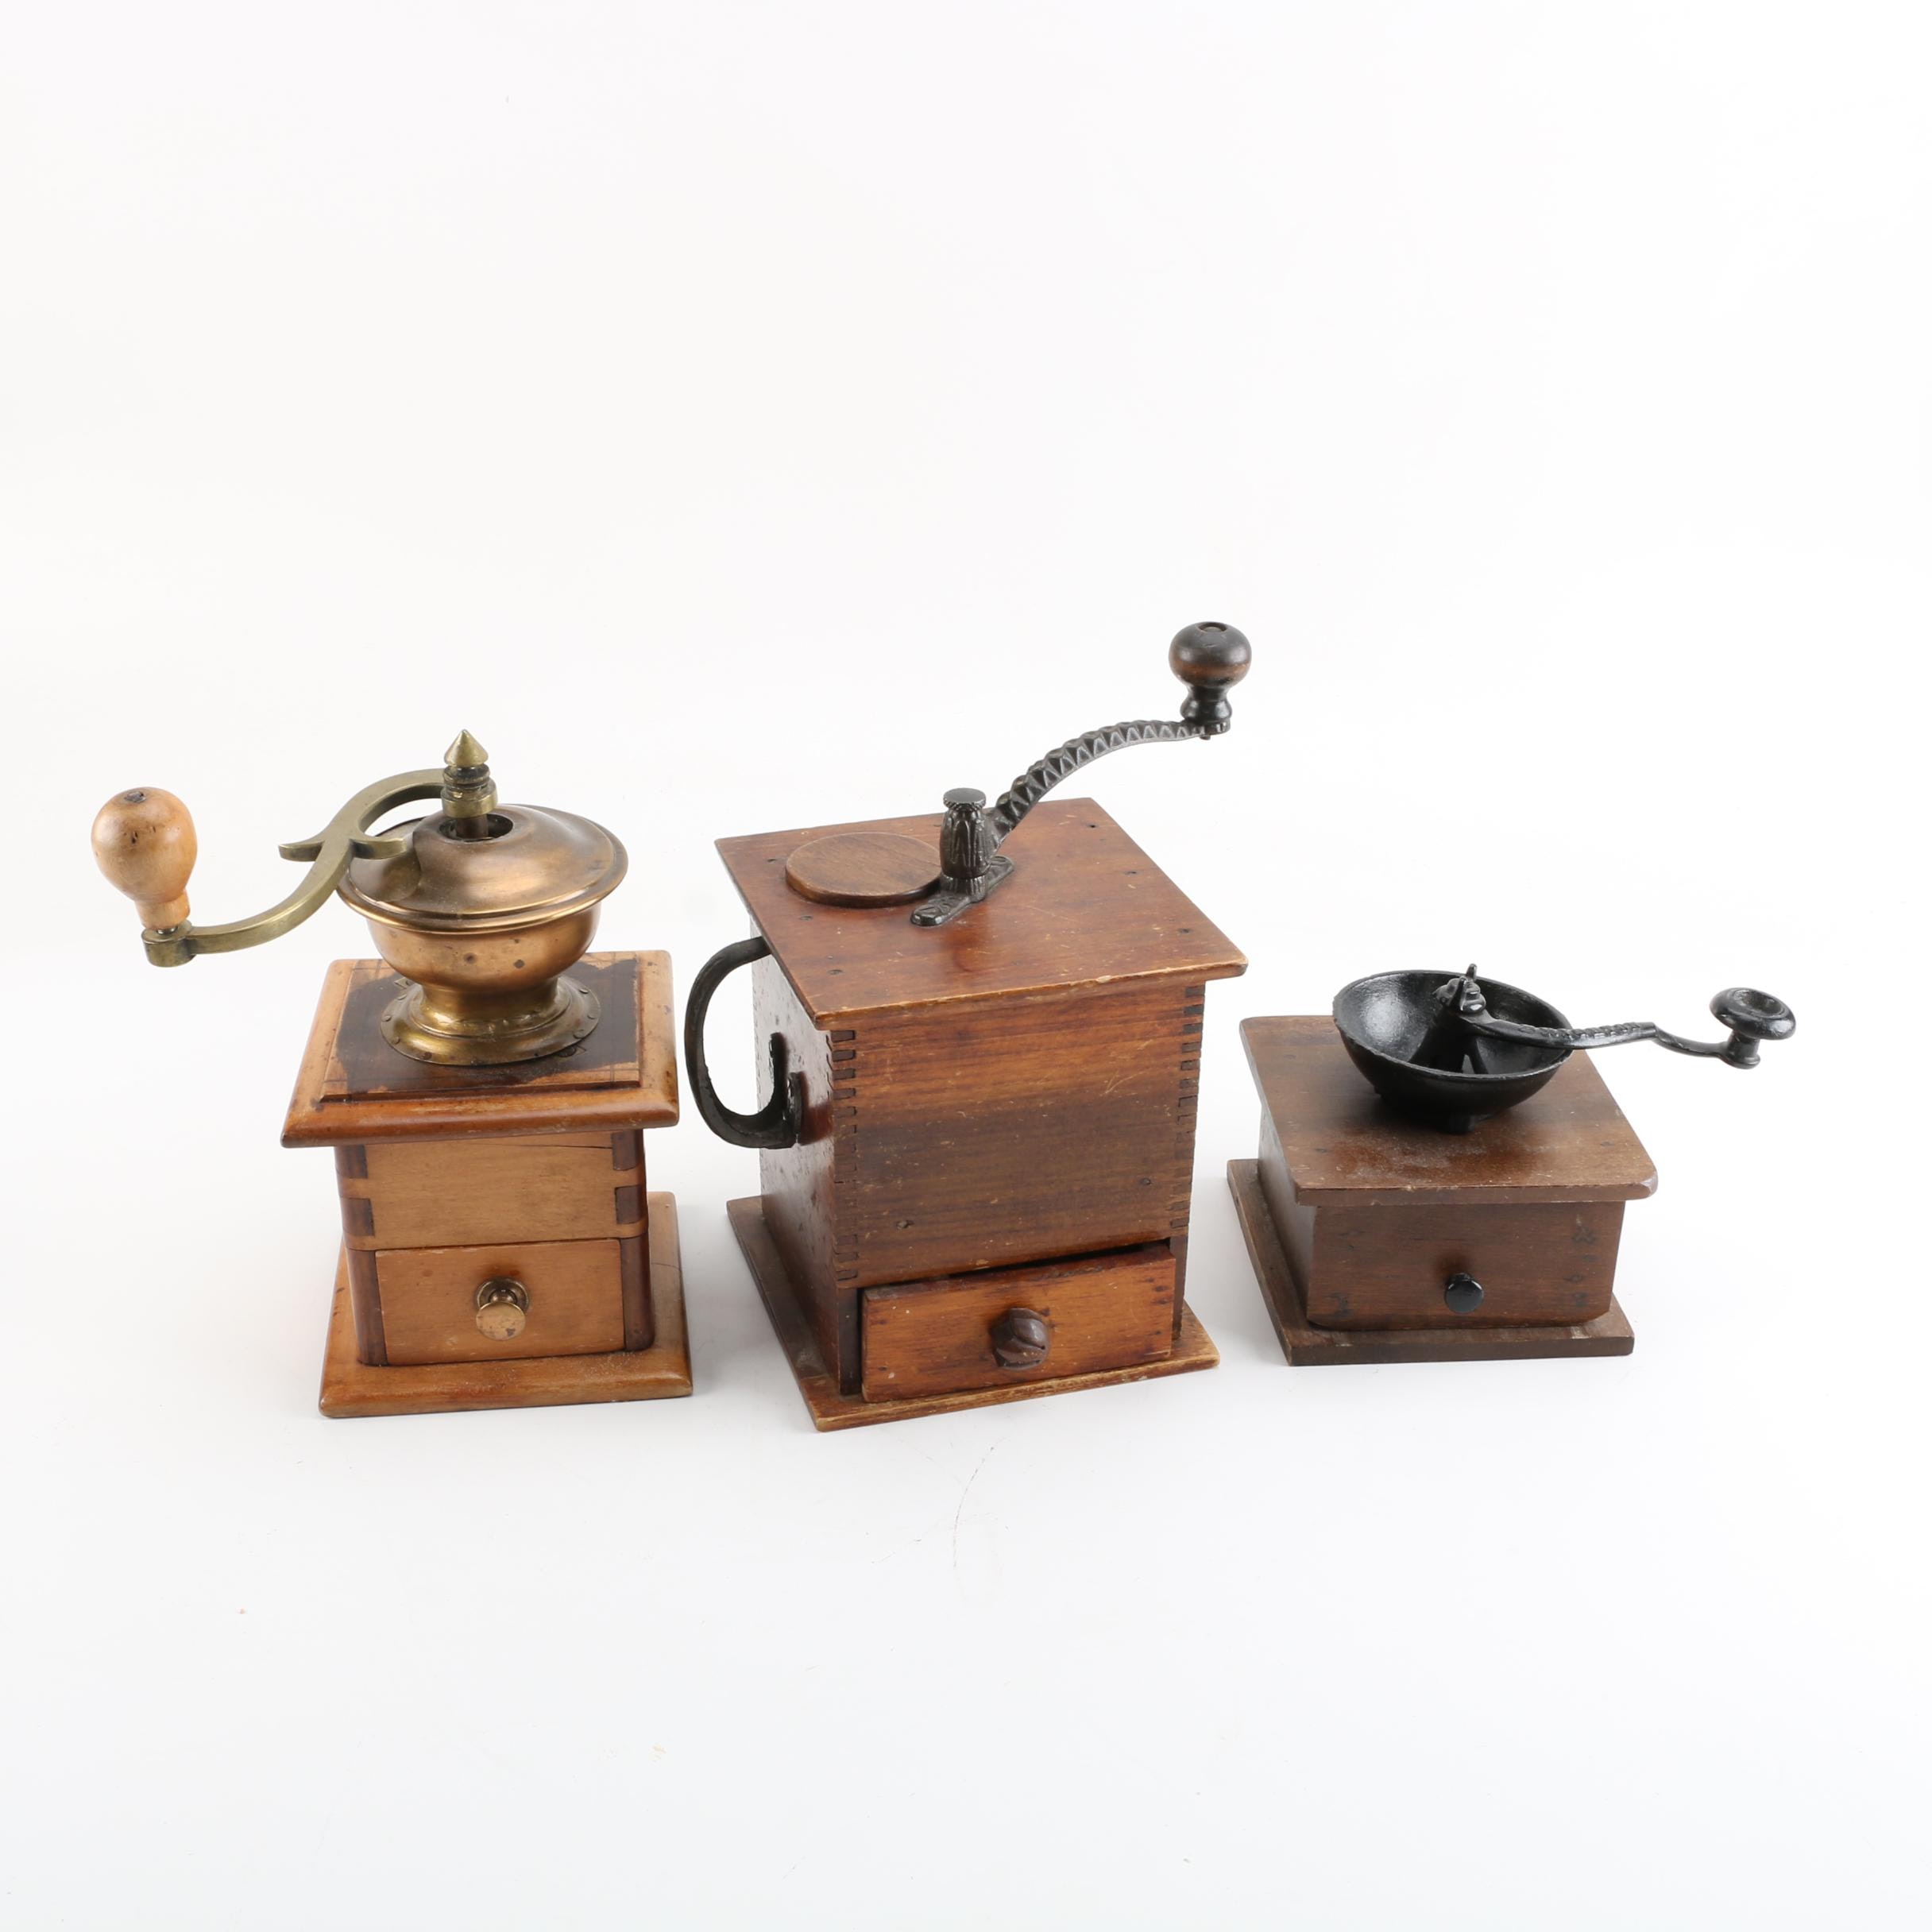 Antique Wooden Dovetailed Coffee Grinders